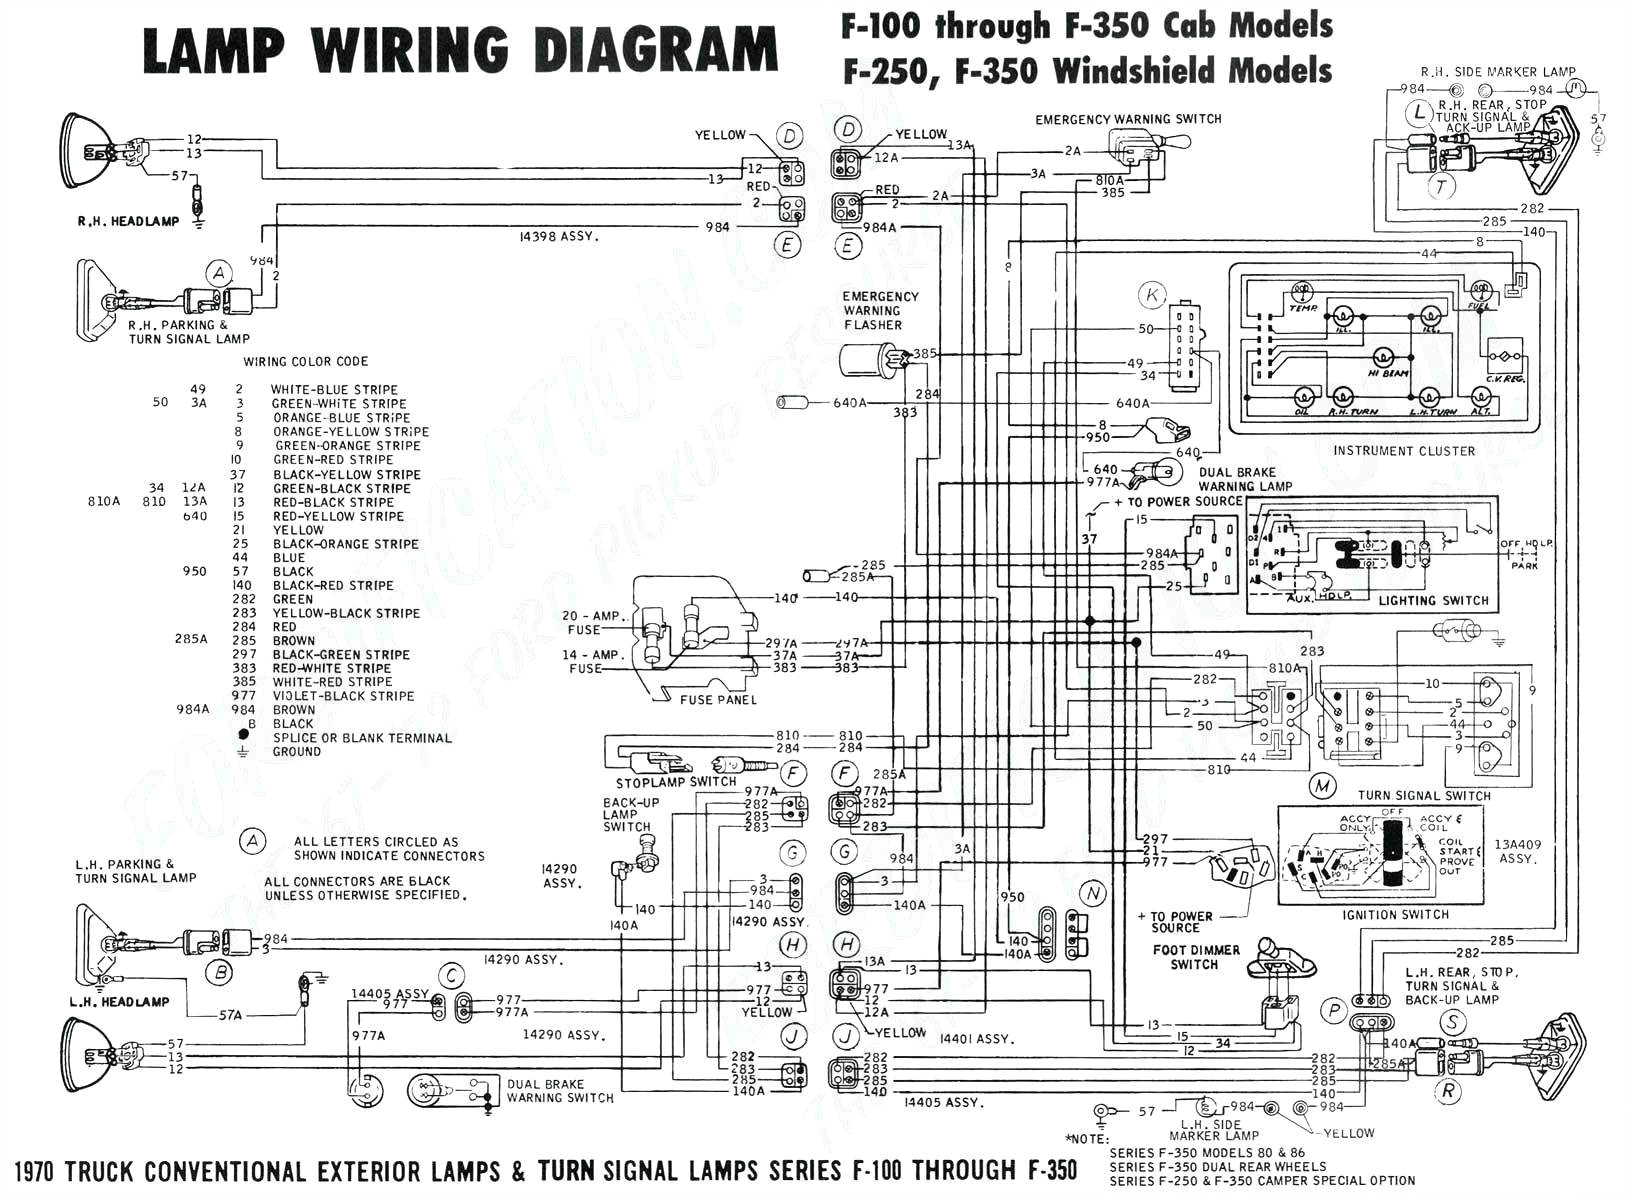 hella 550 wiring diagram fresh wiring diagram york air conditioner archives page 2 of 2